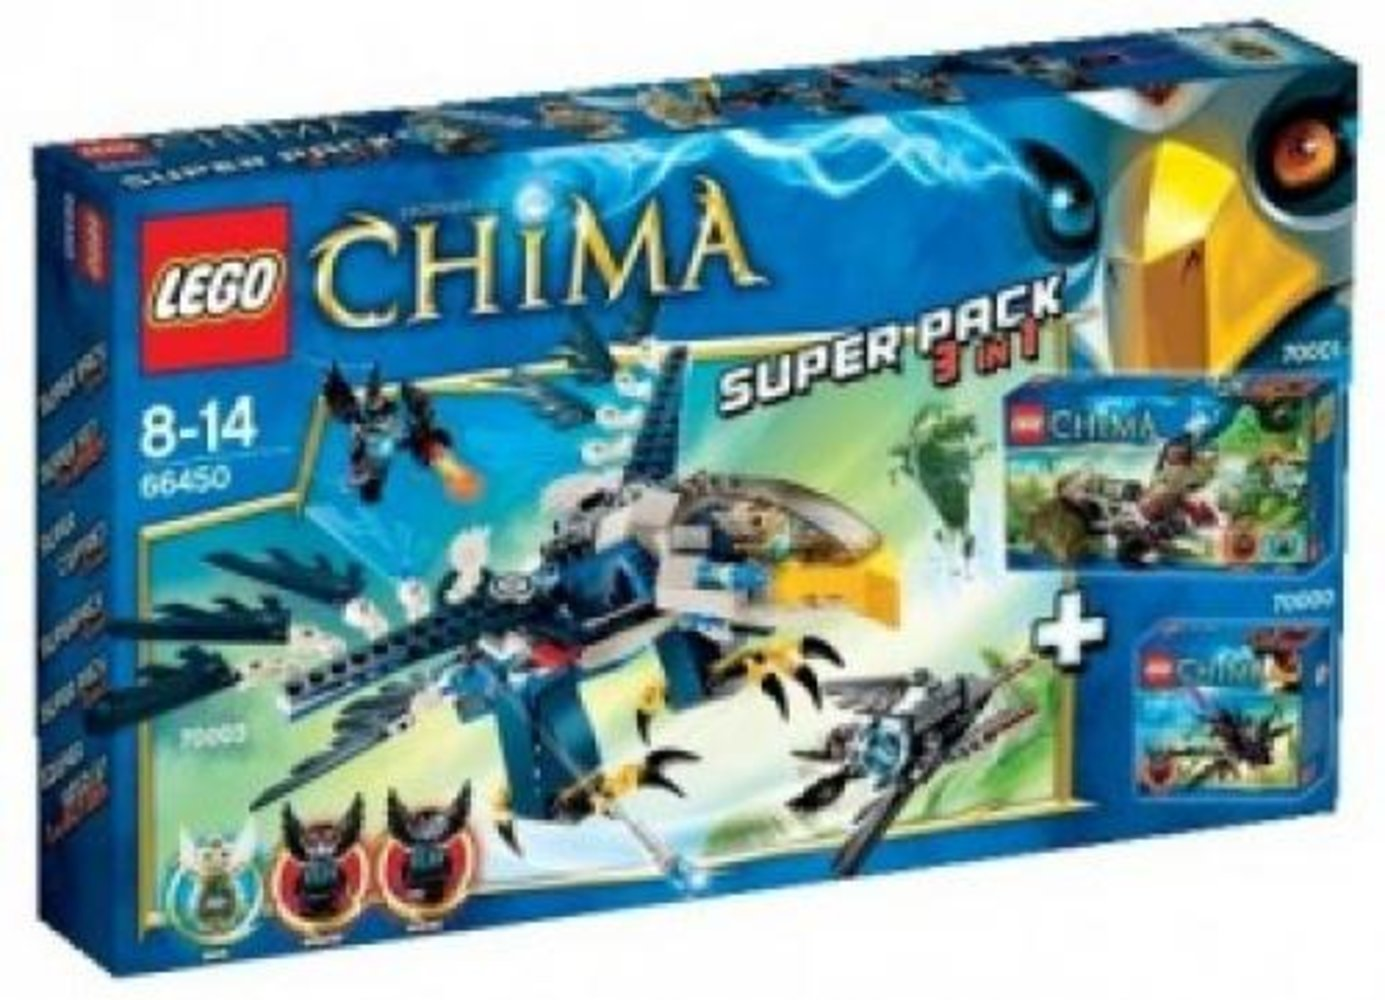 Legends of Chima Super Pack 3 in 1